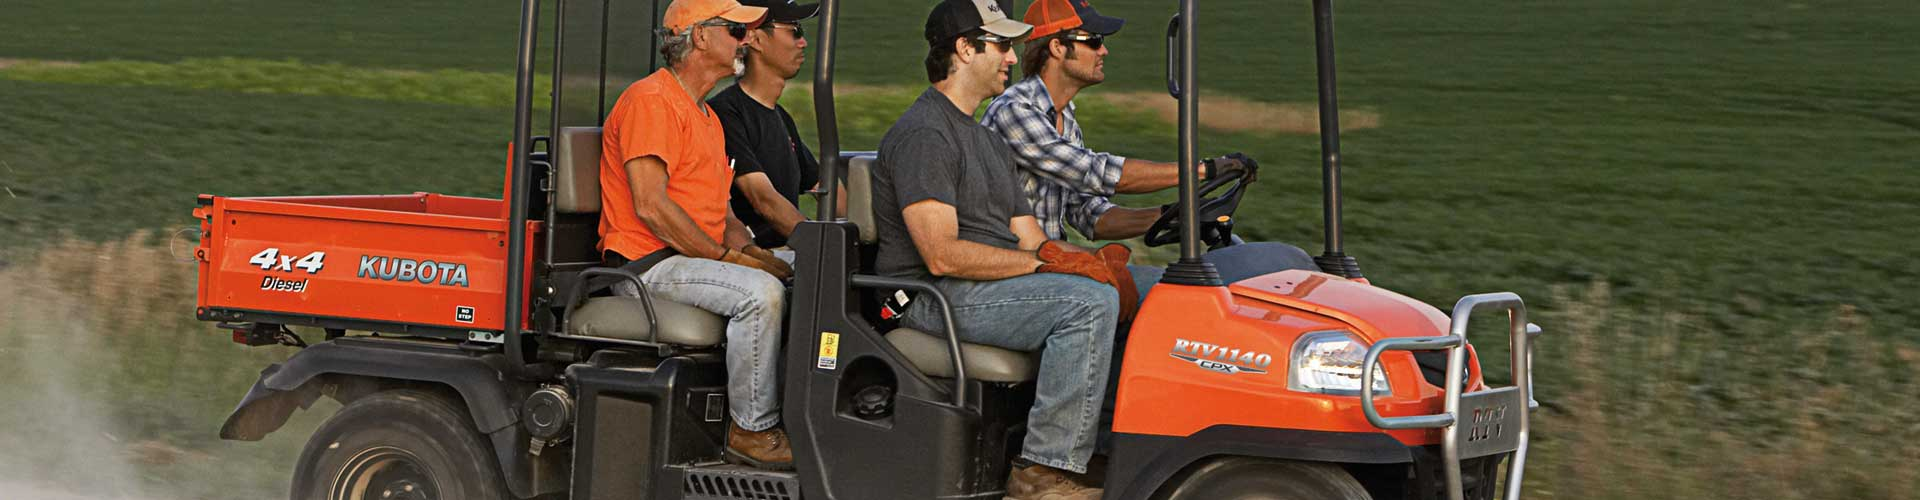 Build Your Kubota RTVX